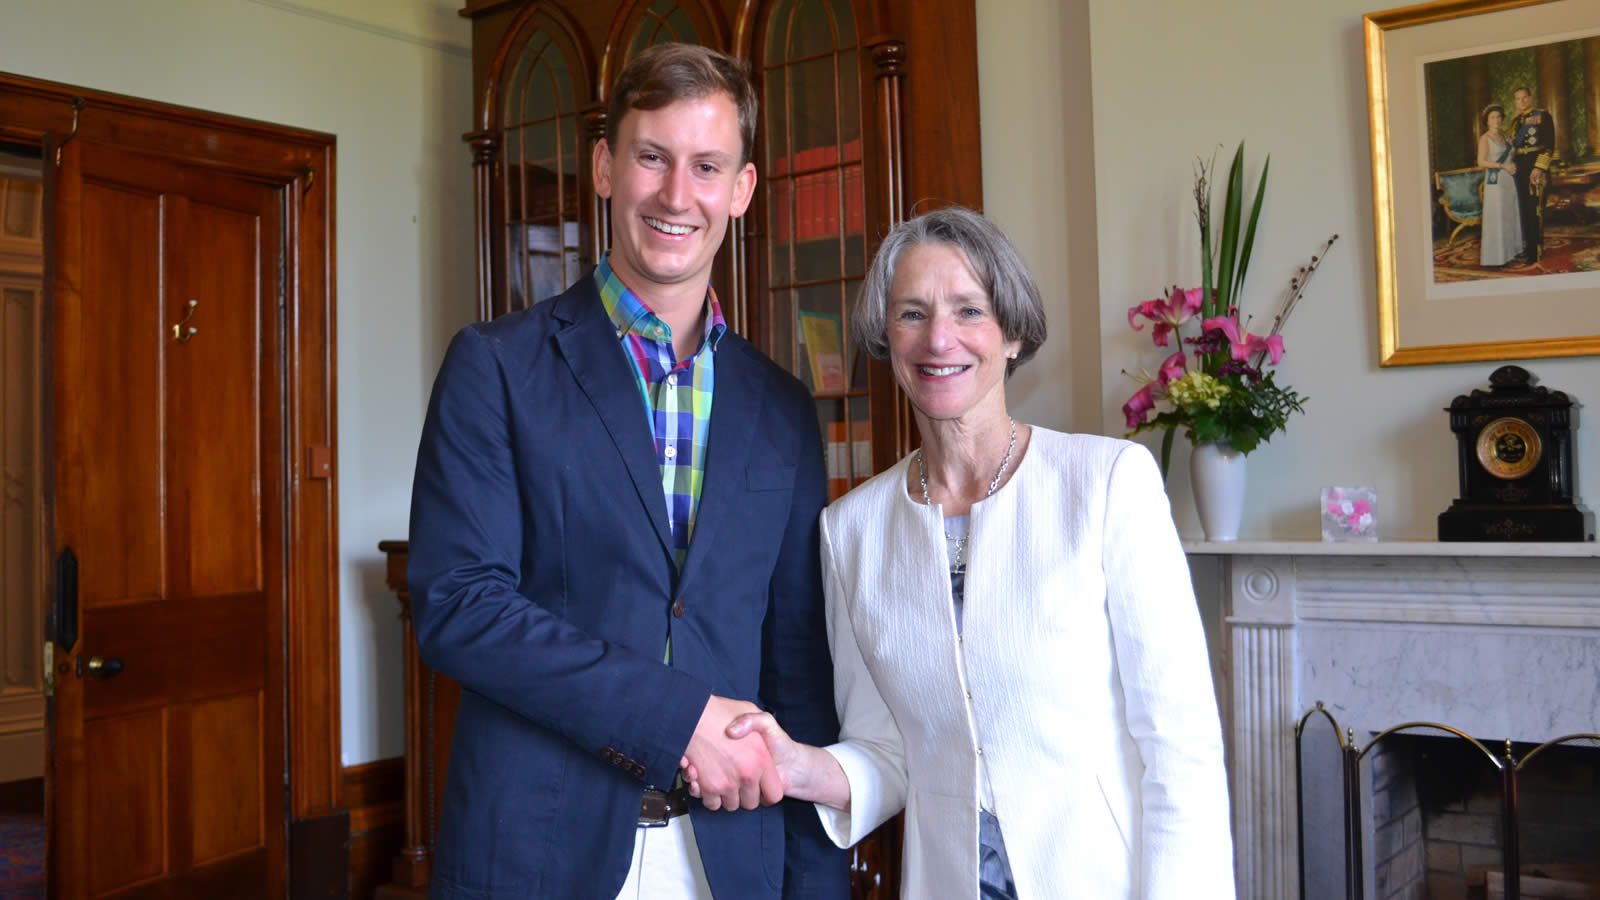 Henry West ('11) with Her Excellency Professor the Honourable Kate Warner AM, Governor of Tasmania (Photo Courtesy of the University of Tasmania)